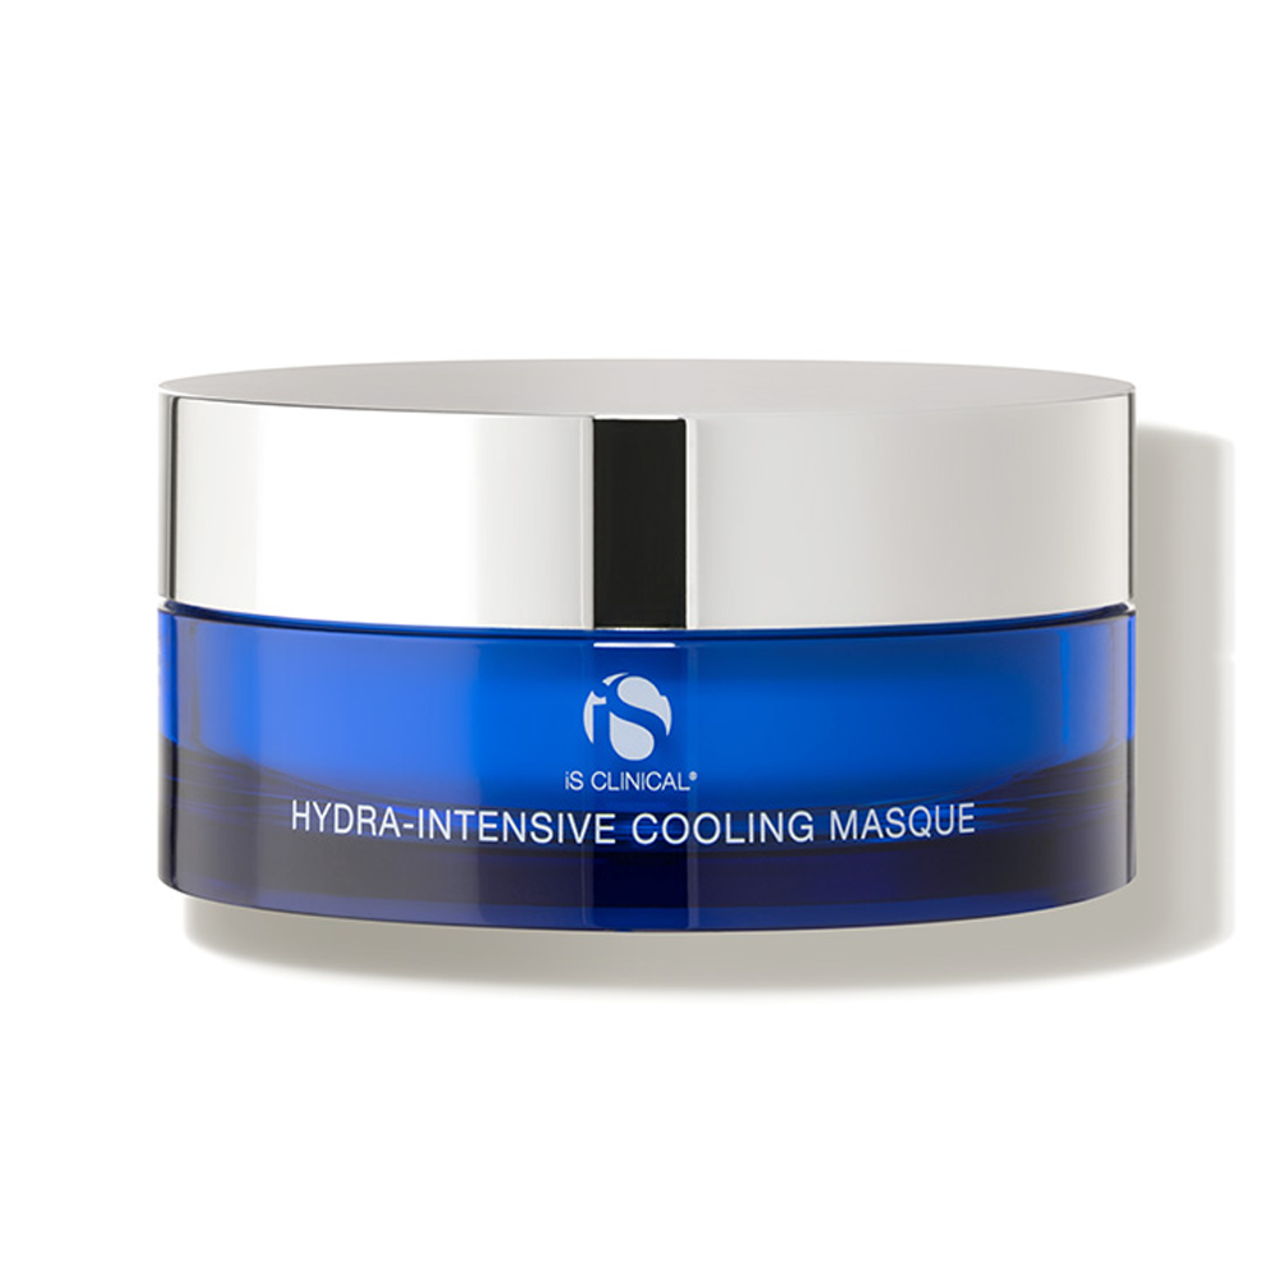 iS Clinical Hydra-Intensive Cooling Masque BeautifiedYou.com